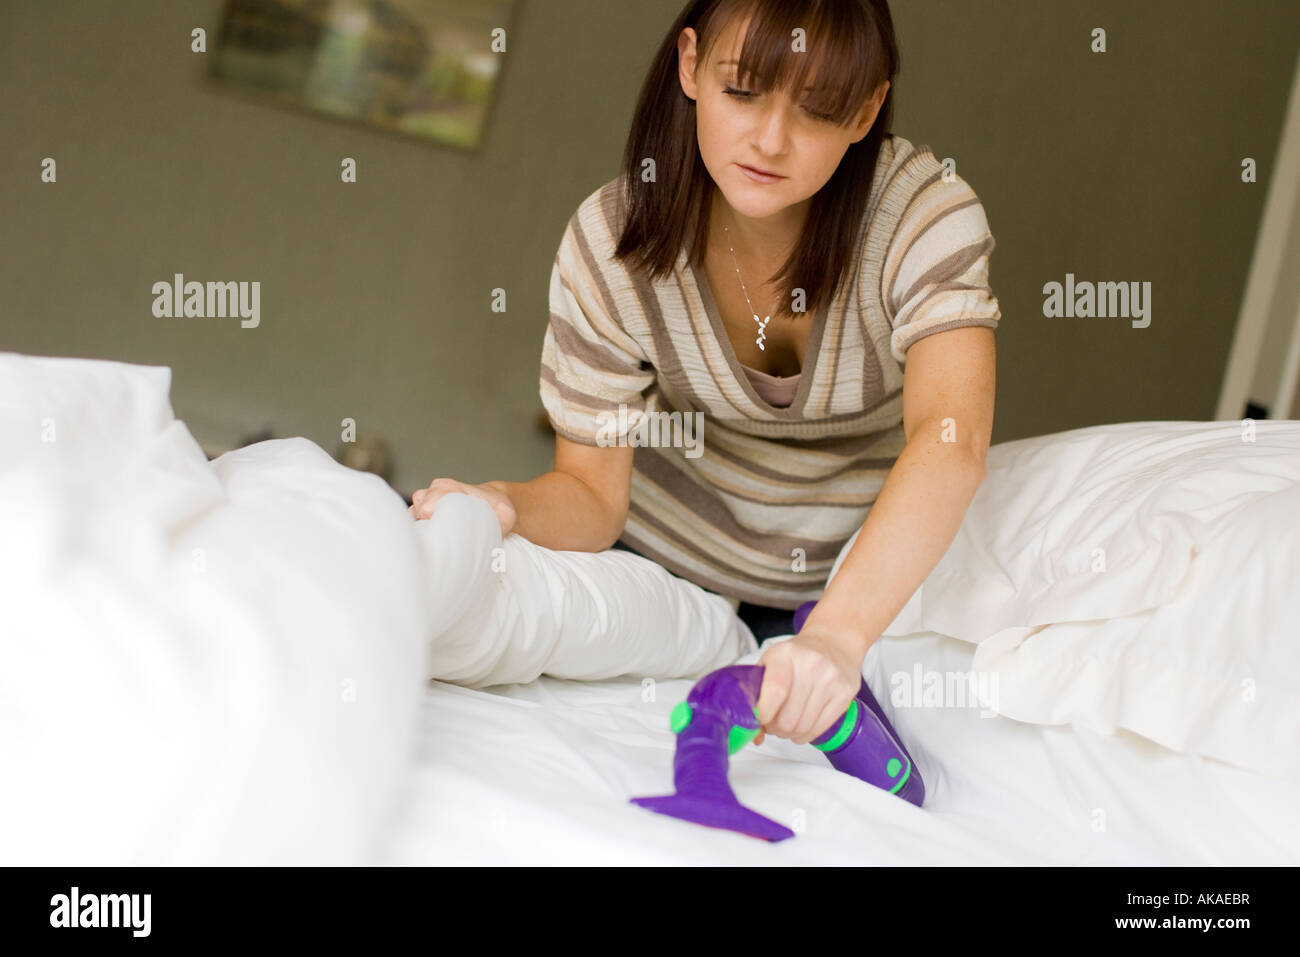 woman hoovering bed to kill bed bugs - Stock Image